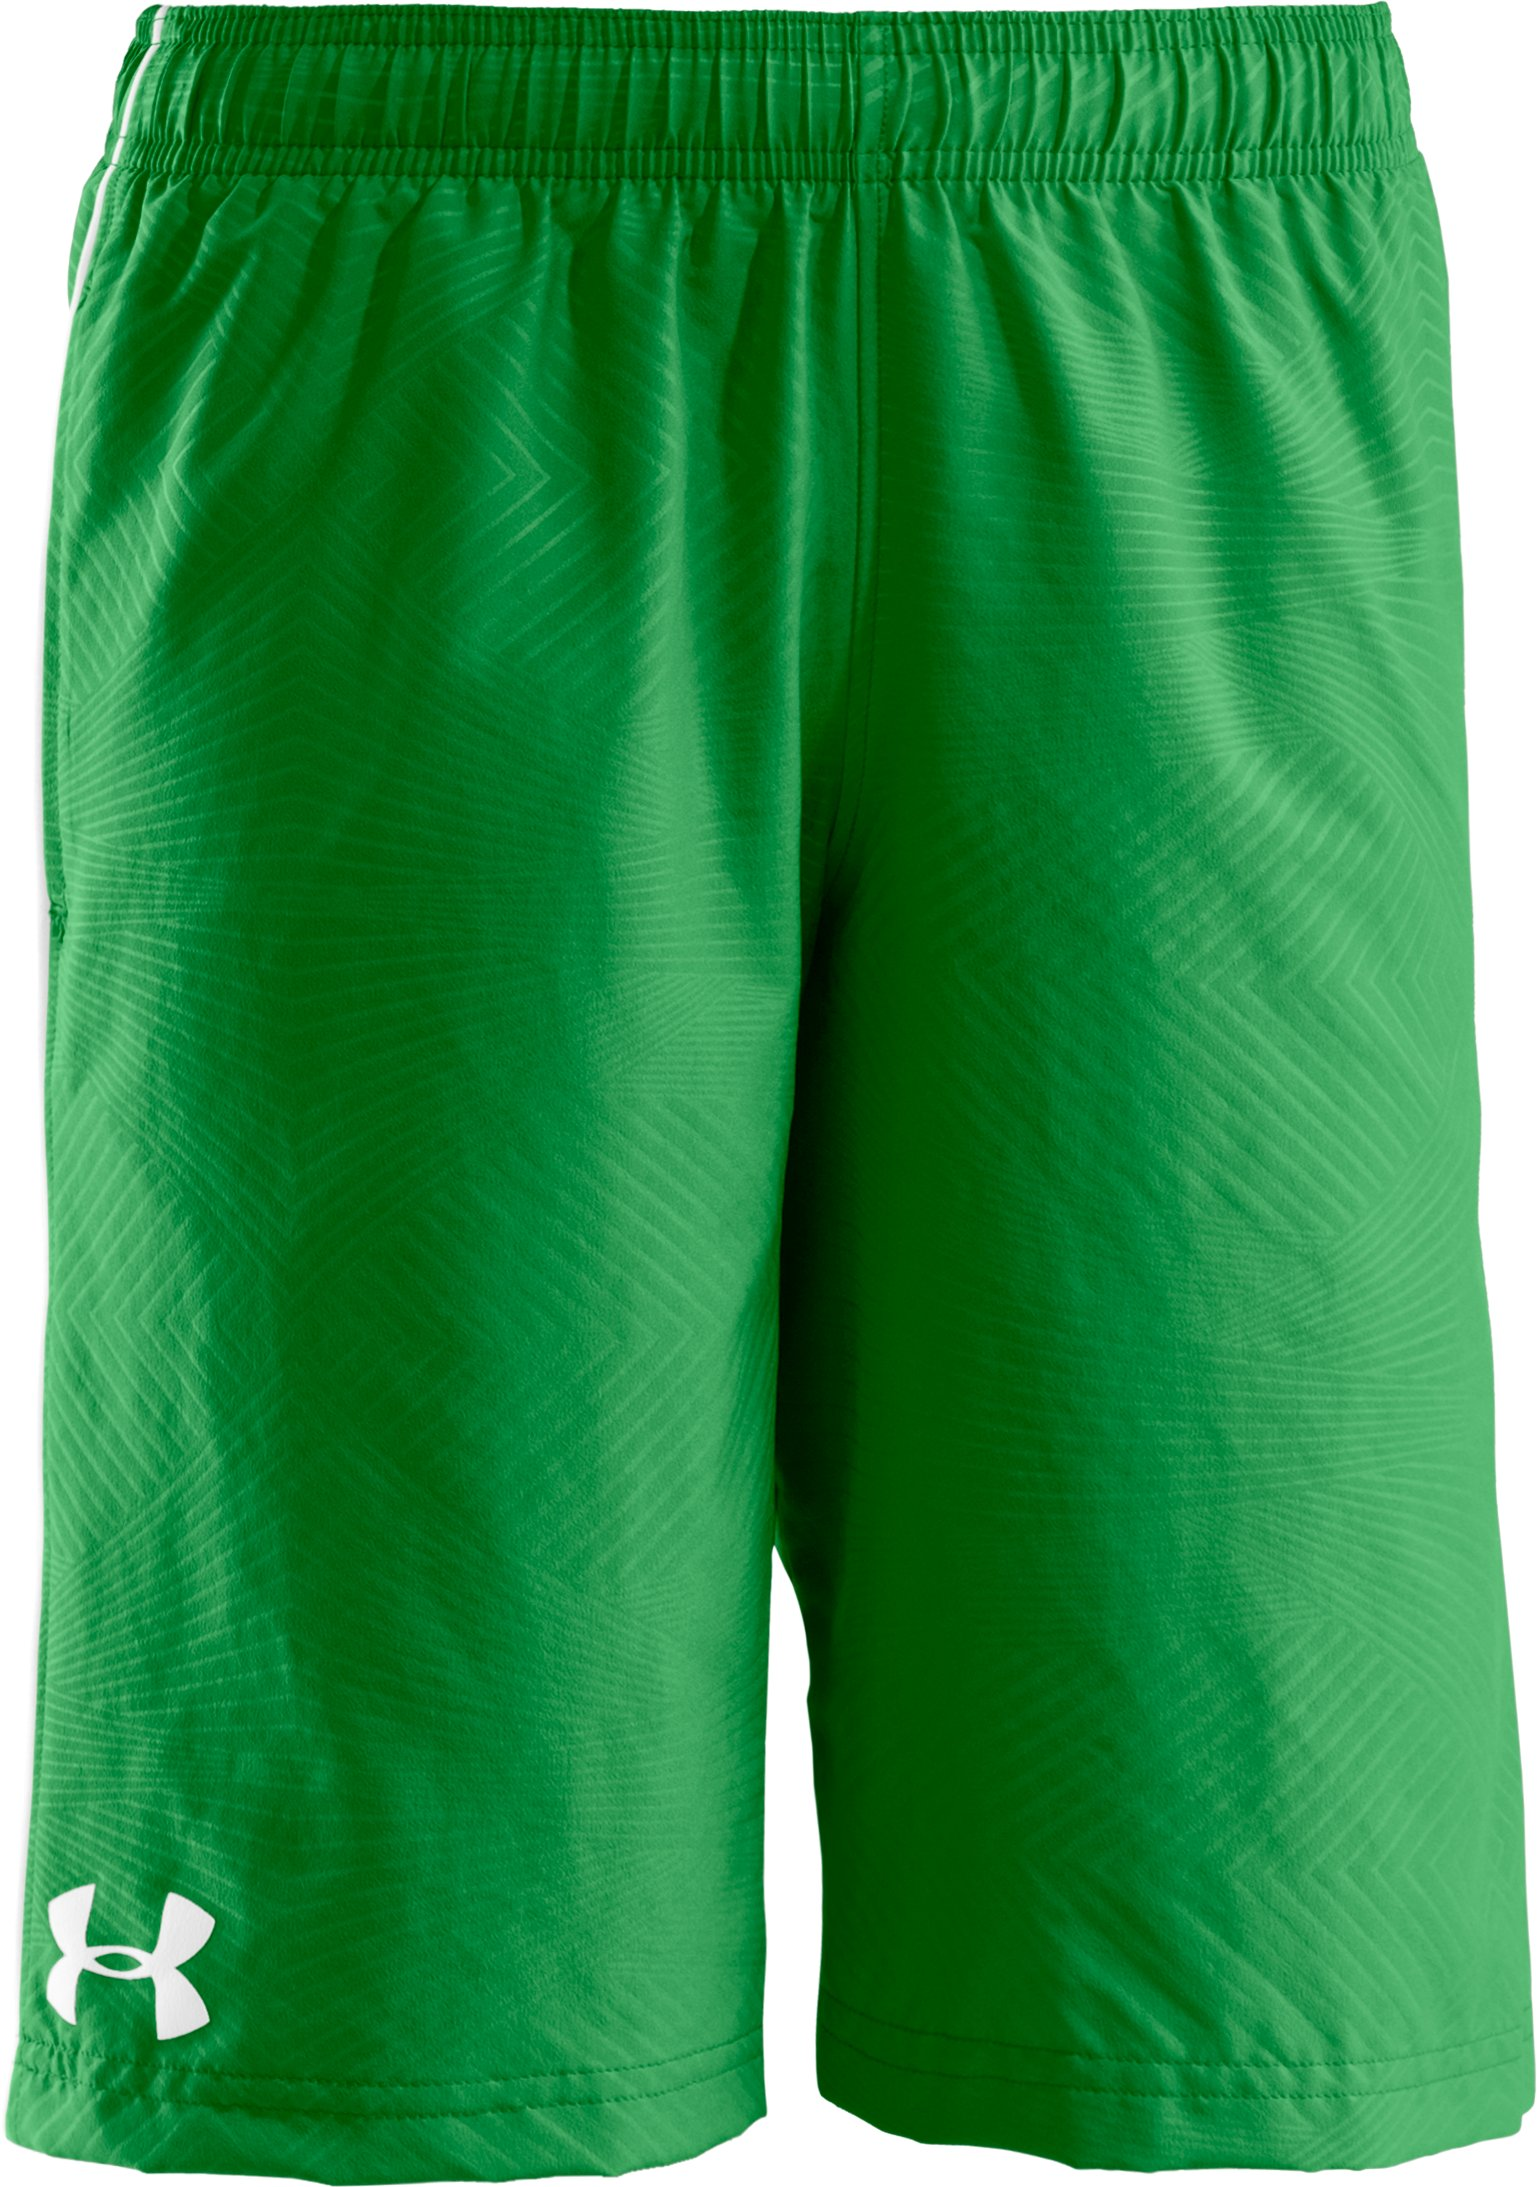 Boys' UA Ripping Shorts, Feisty, zoomed image